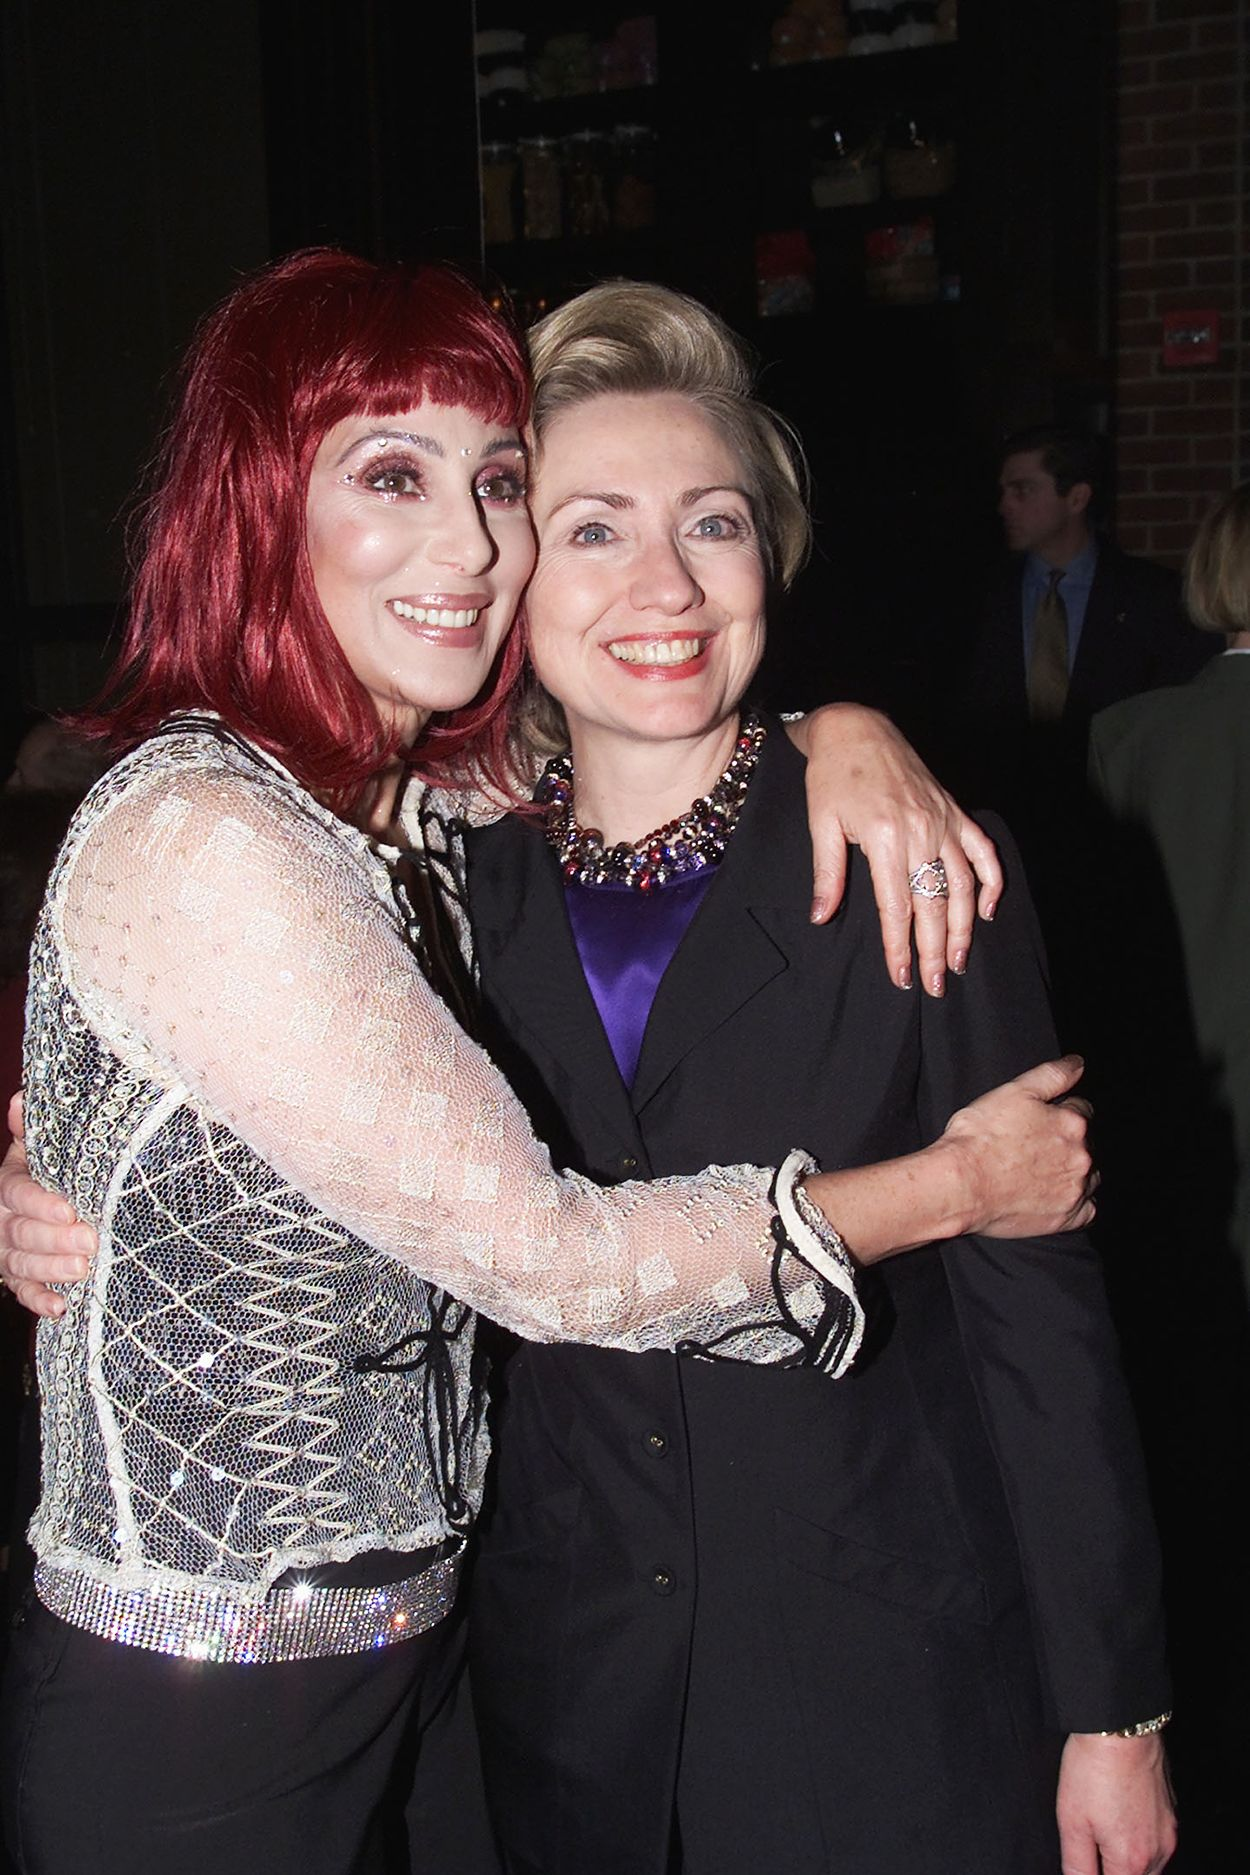 Cher and Hillary Clinton at Hillary Clinton's Birthday Party at the Hudson Hotel in New York City on Oct. 25, 2000   Billboard